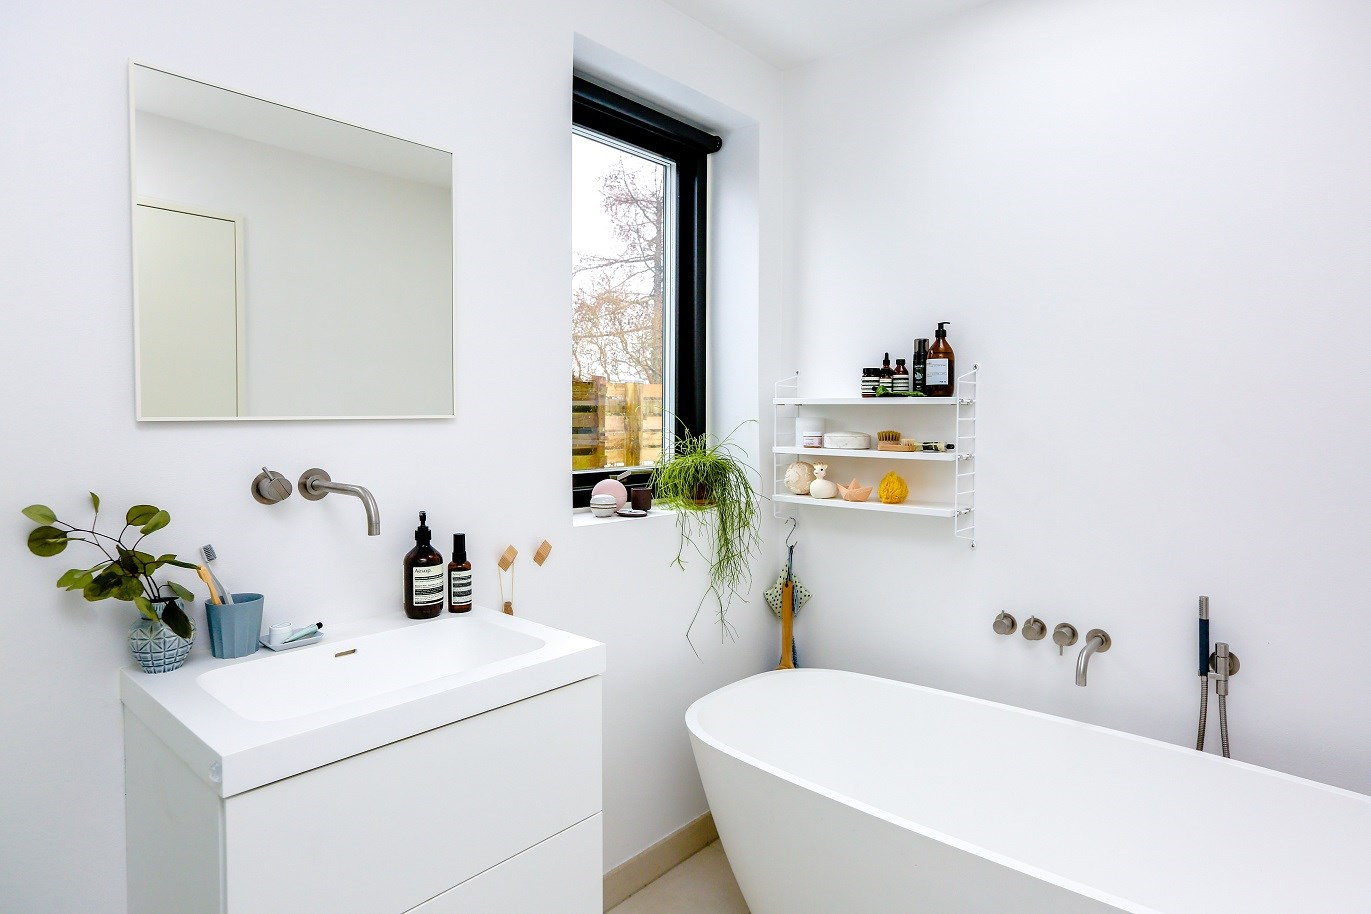 How To Style Your Bathroom According To Home Interior Experts